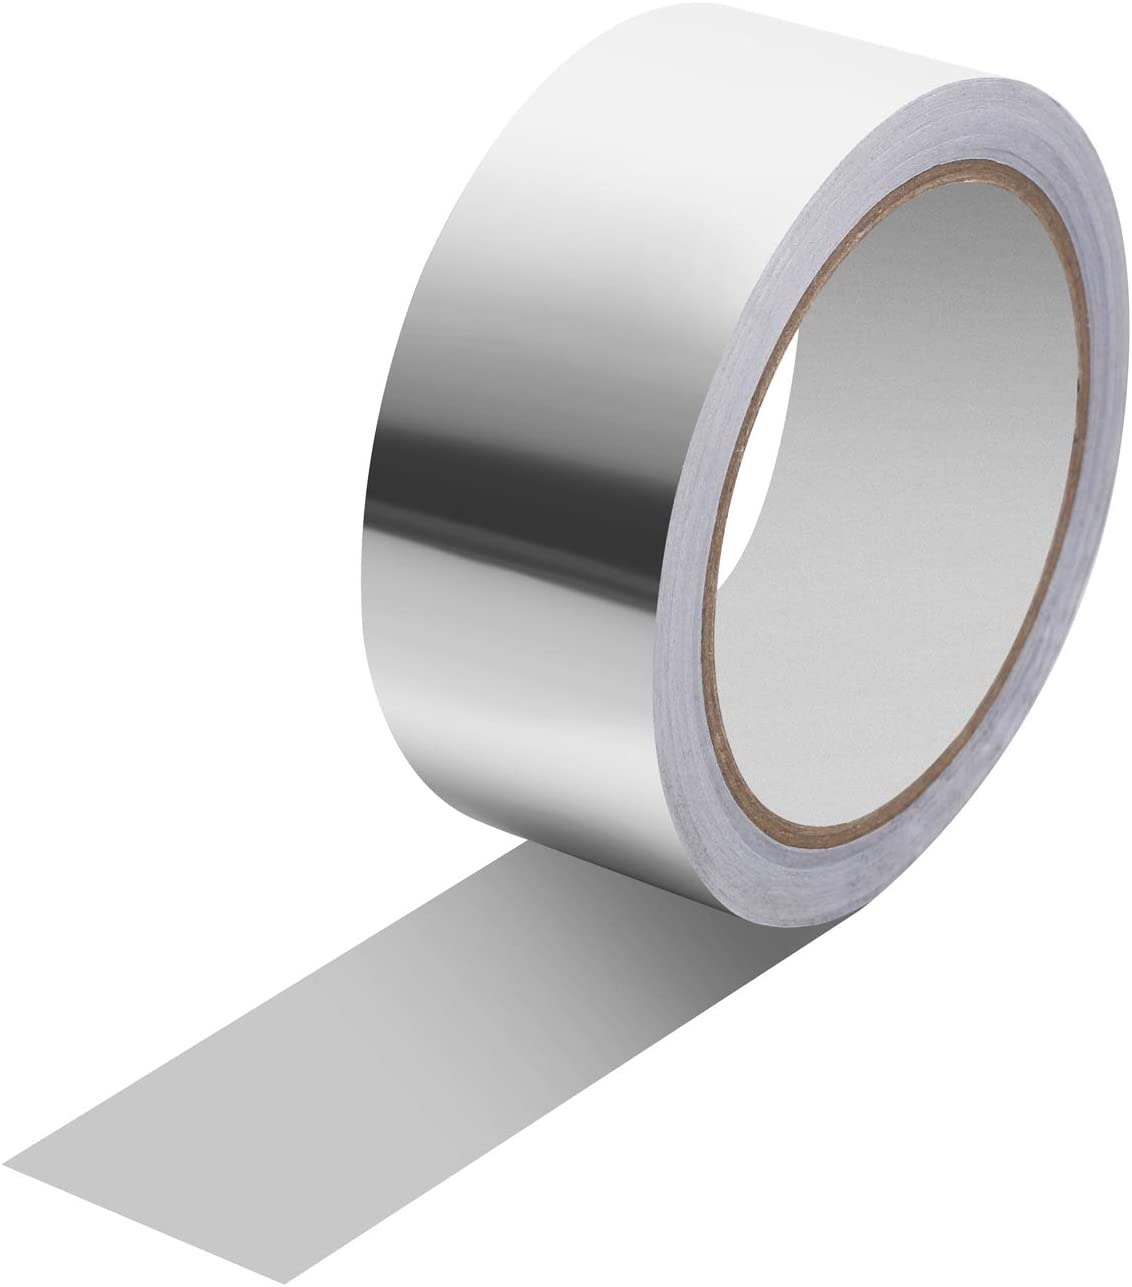 YiePhiot Finishing Sealing Tape for car Sound deadening Tape Installation Aluminum Foil Tape Wide Duct Tape Metal Aluminum Tape(1.6'' 66ft 0.002'')